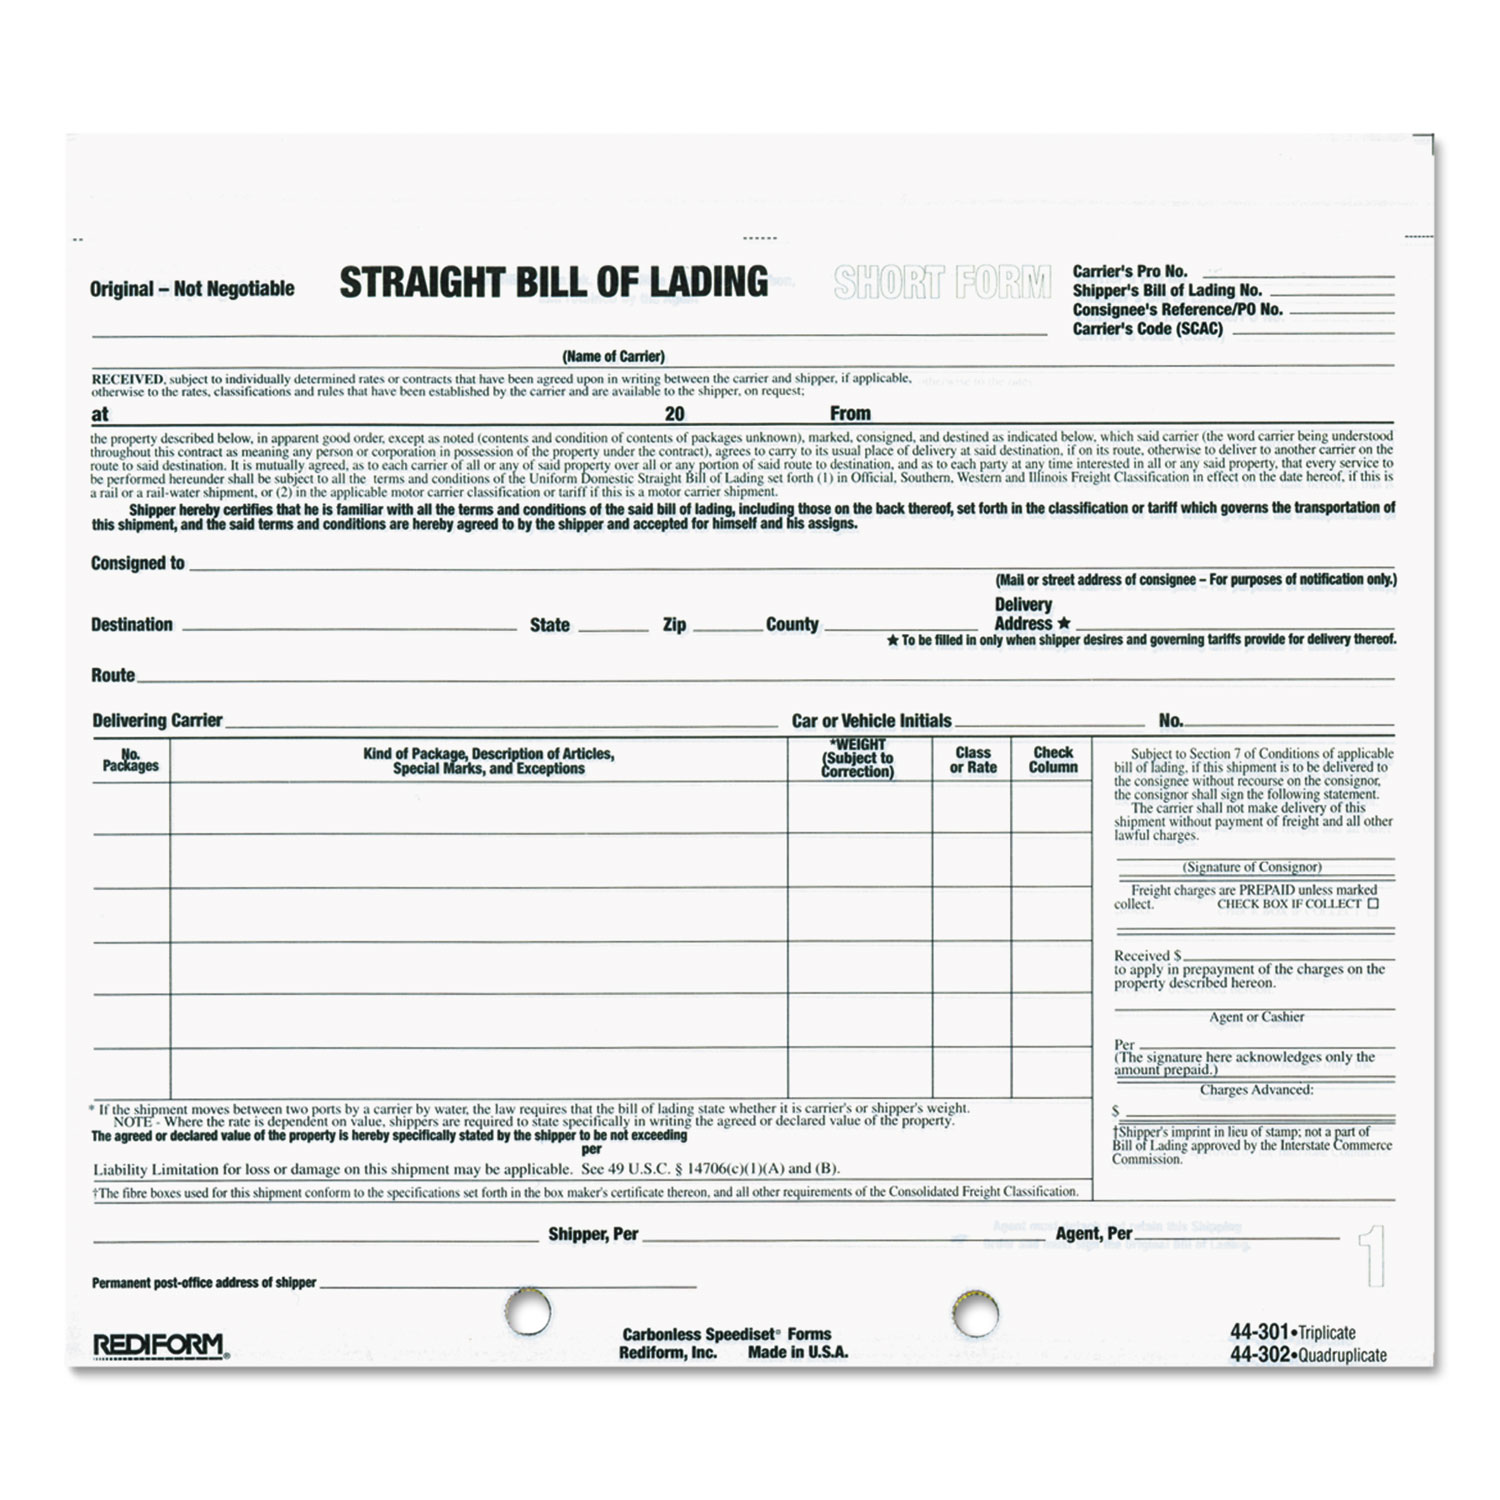 Doc464600 Blank Bill of Lading Short Form Bill of lading – Blank Bill of Lading Short Form